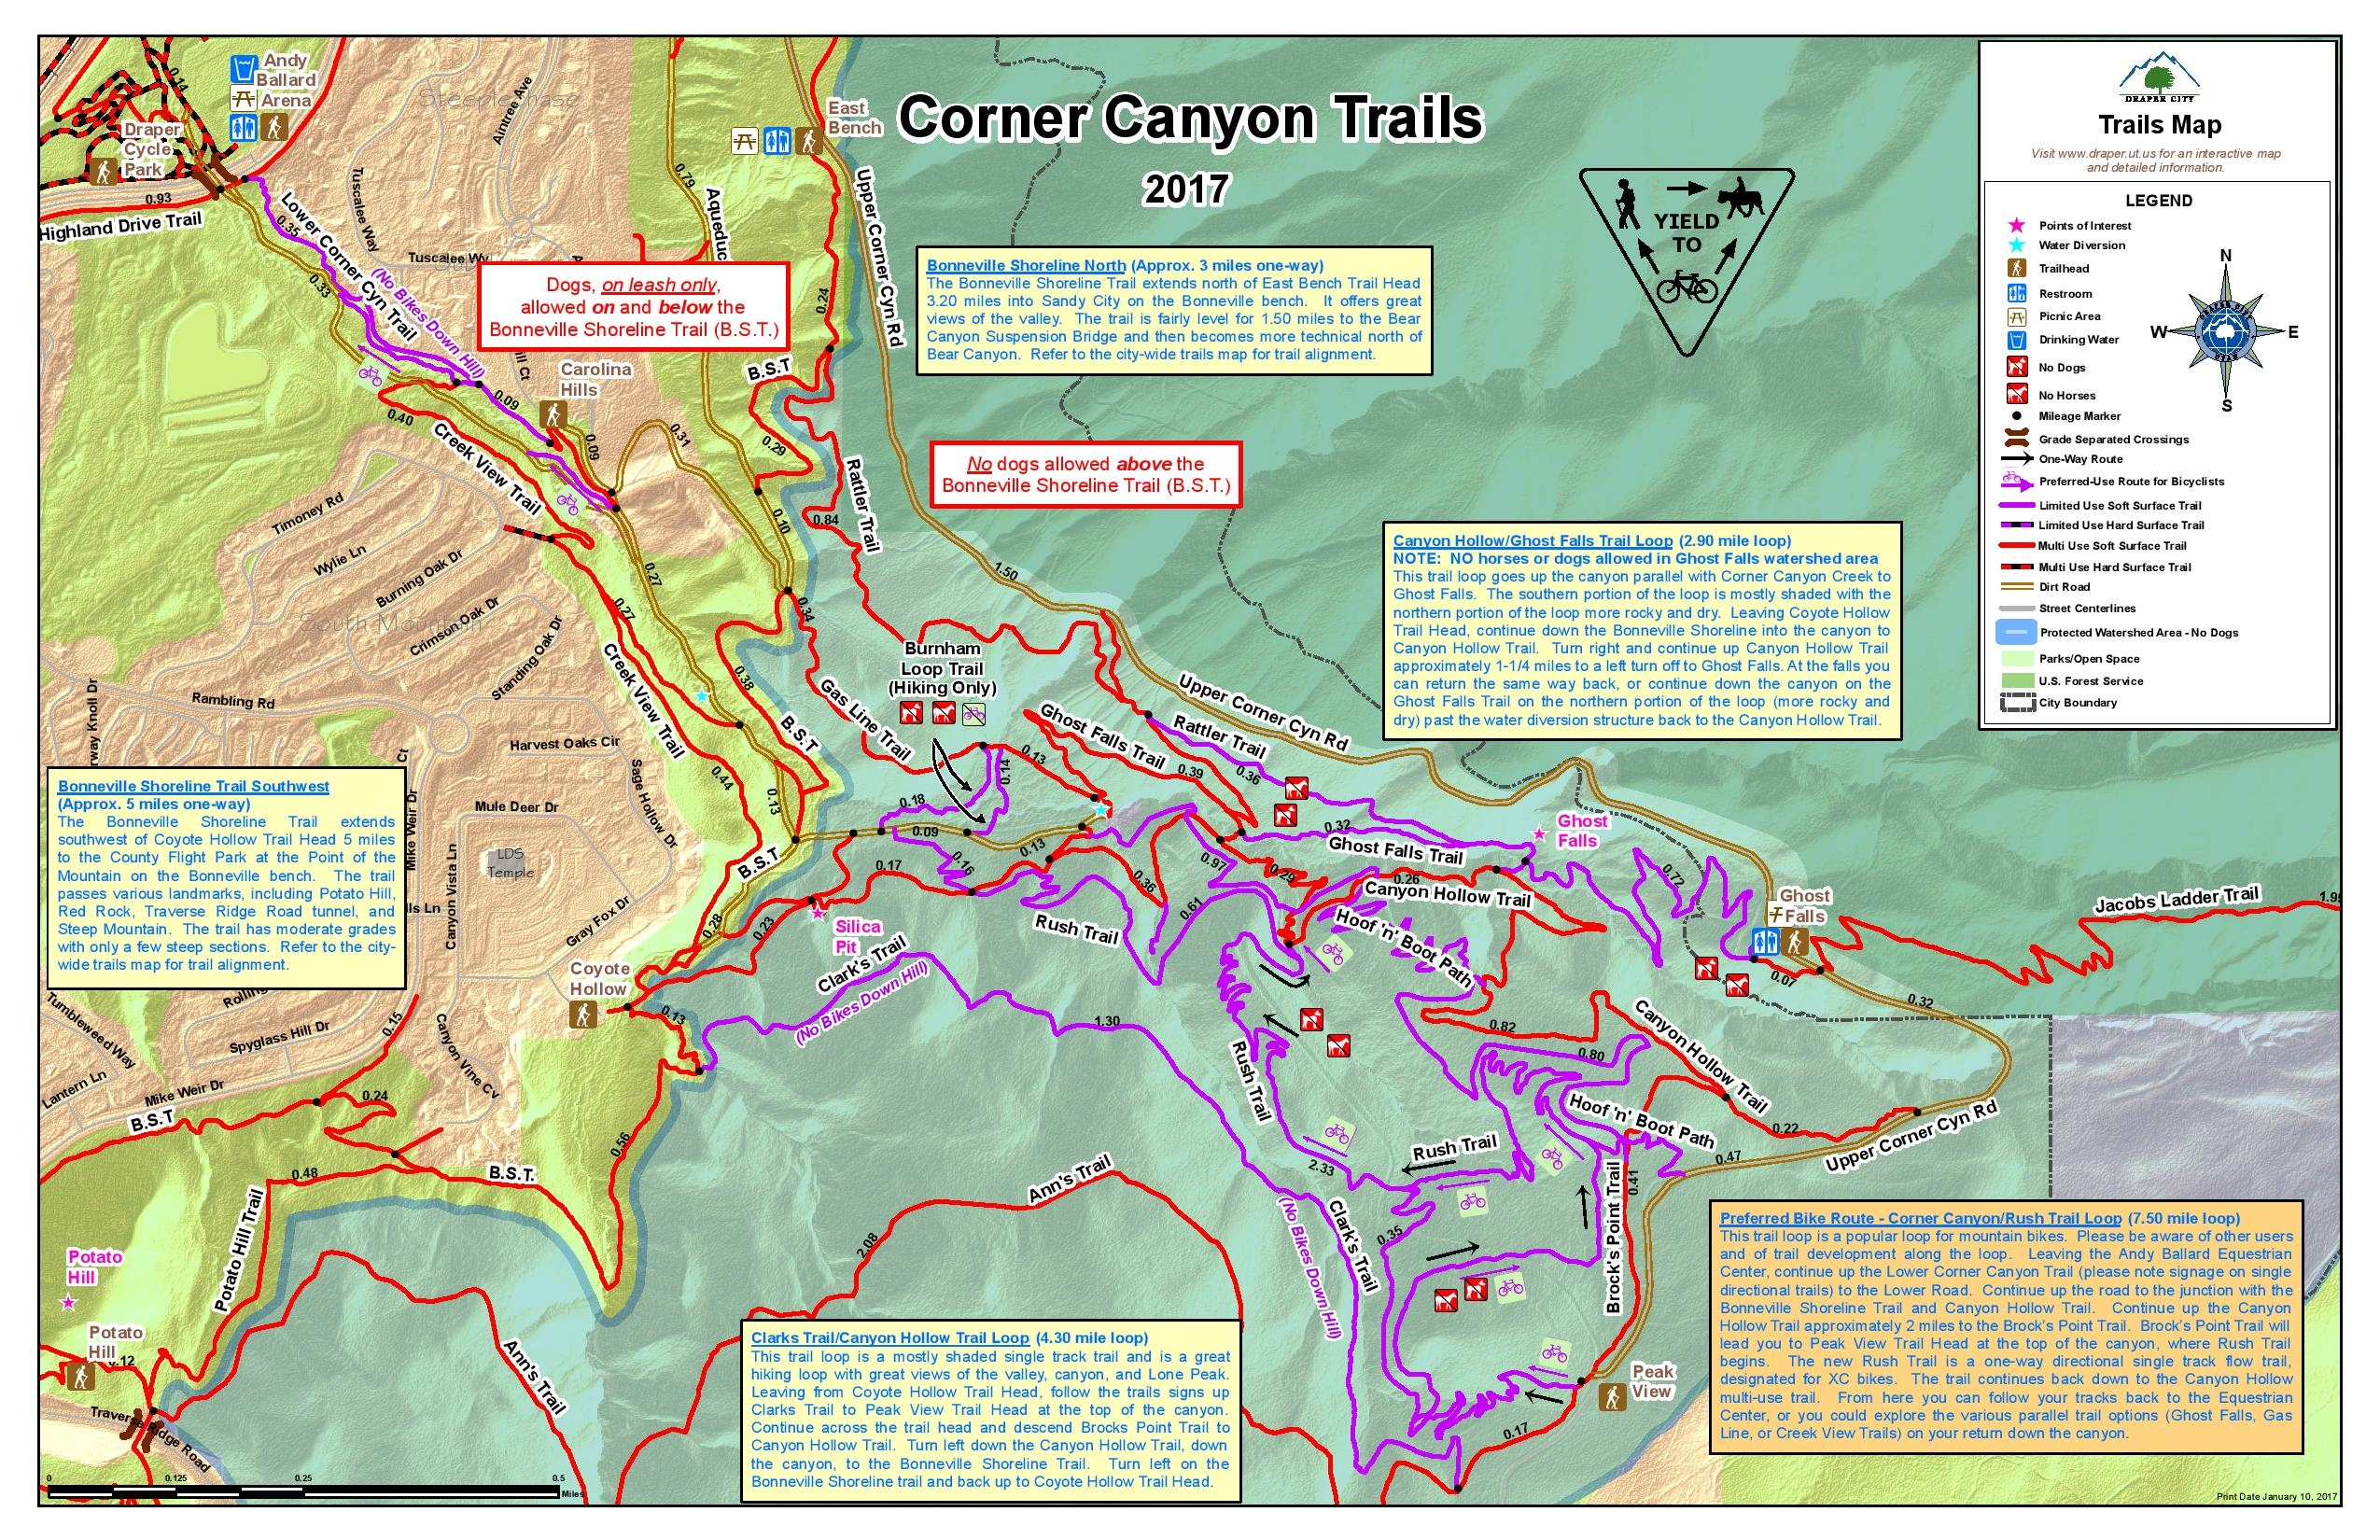 Corner Canyon Trails - Wasatch Mountains